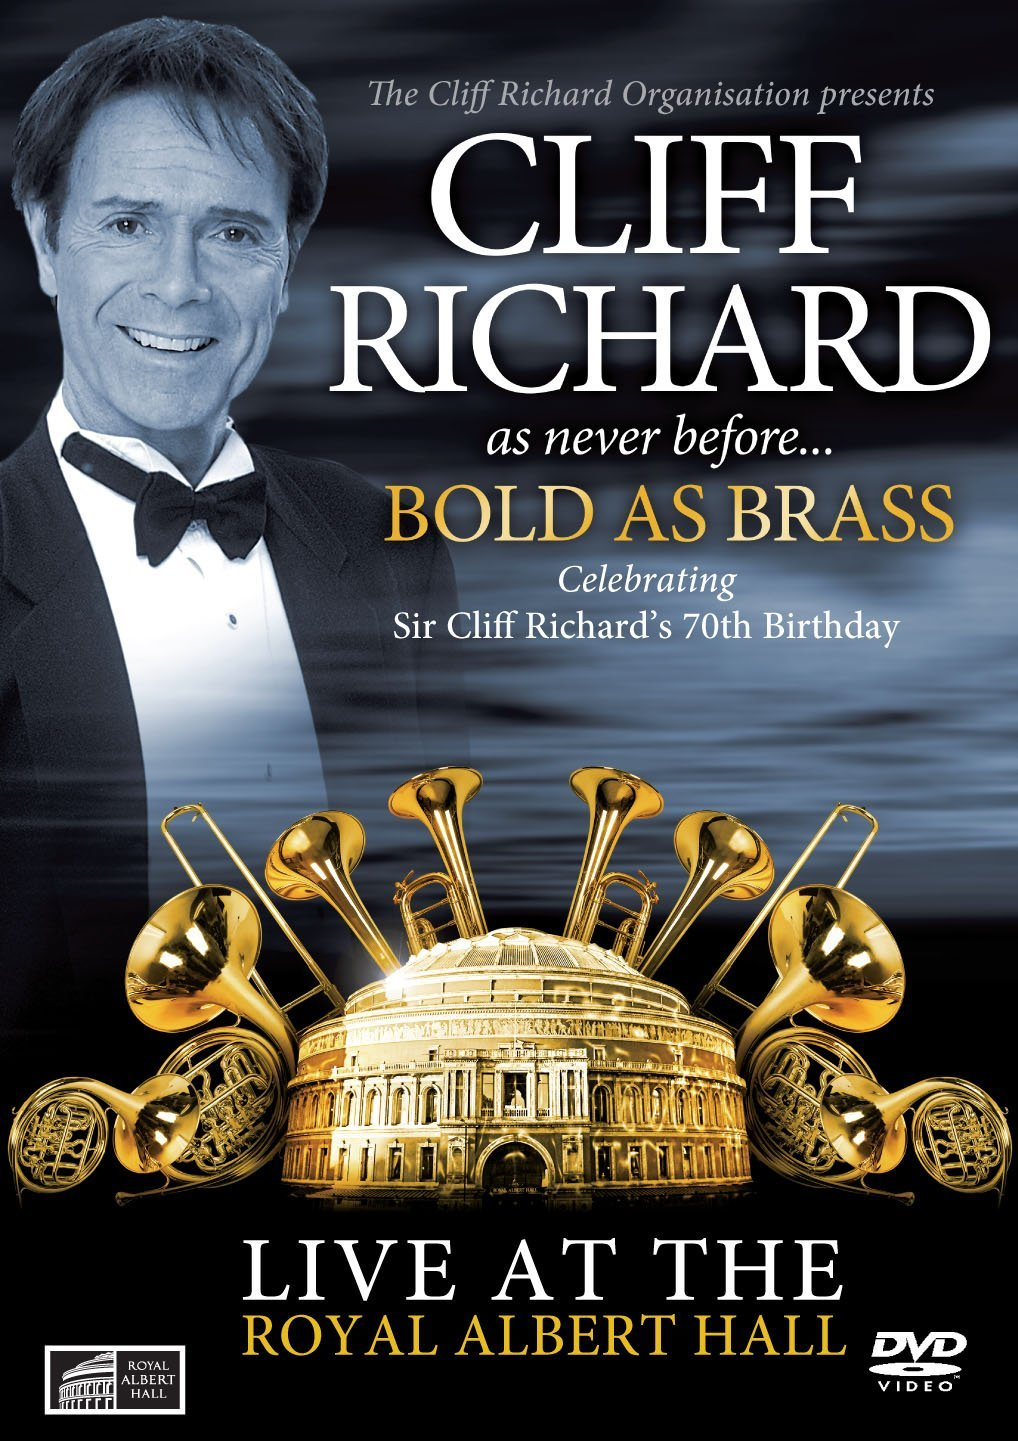 CLIFF RICHARD - BOLD AS BRASS (DVD)